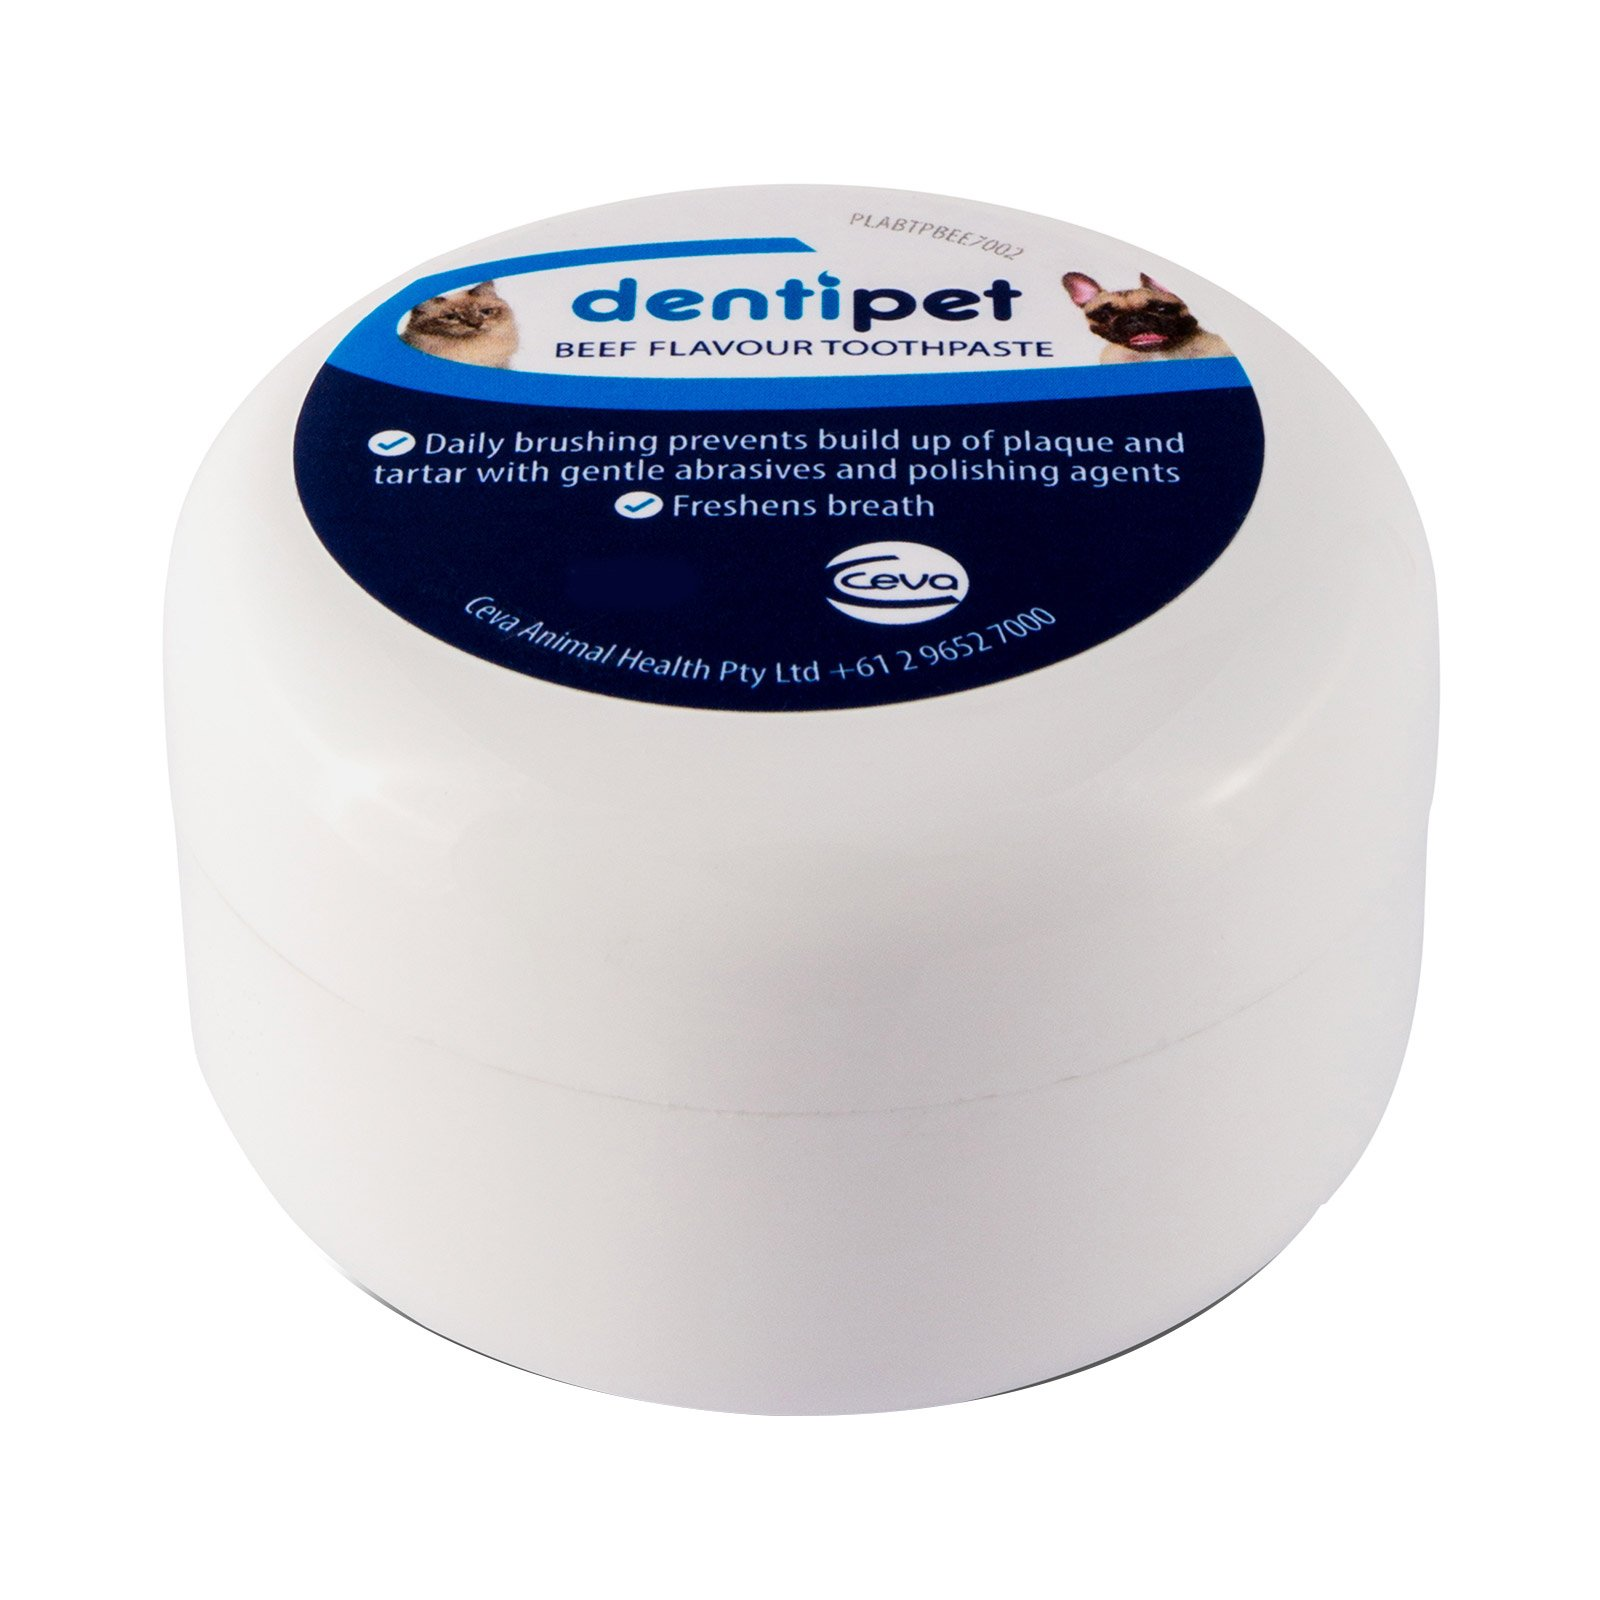 Dentipet Toothpaste for Dogs and Cats 70 Gm Beef Flavour